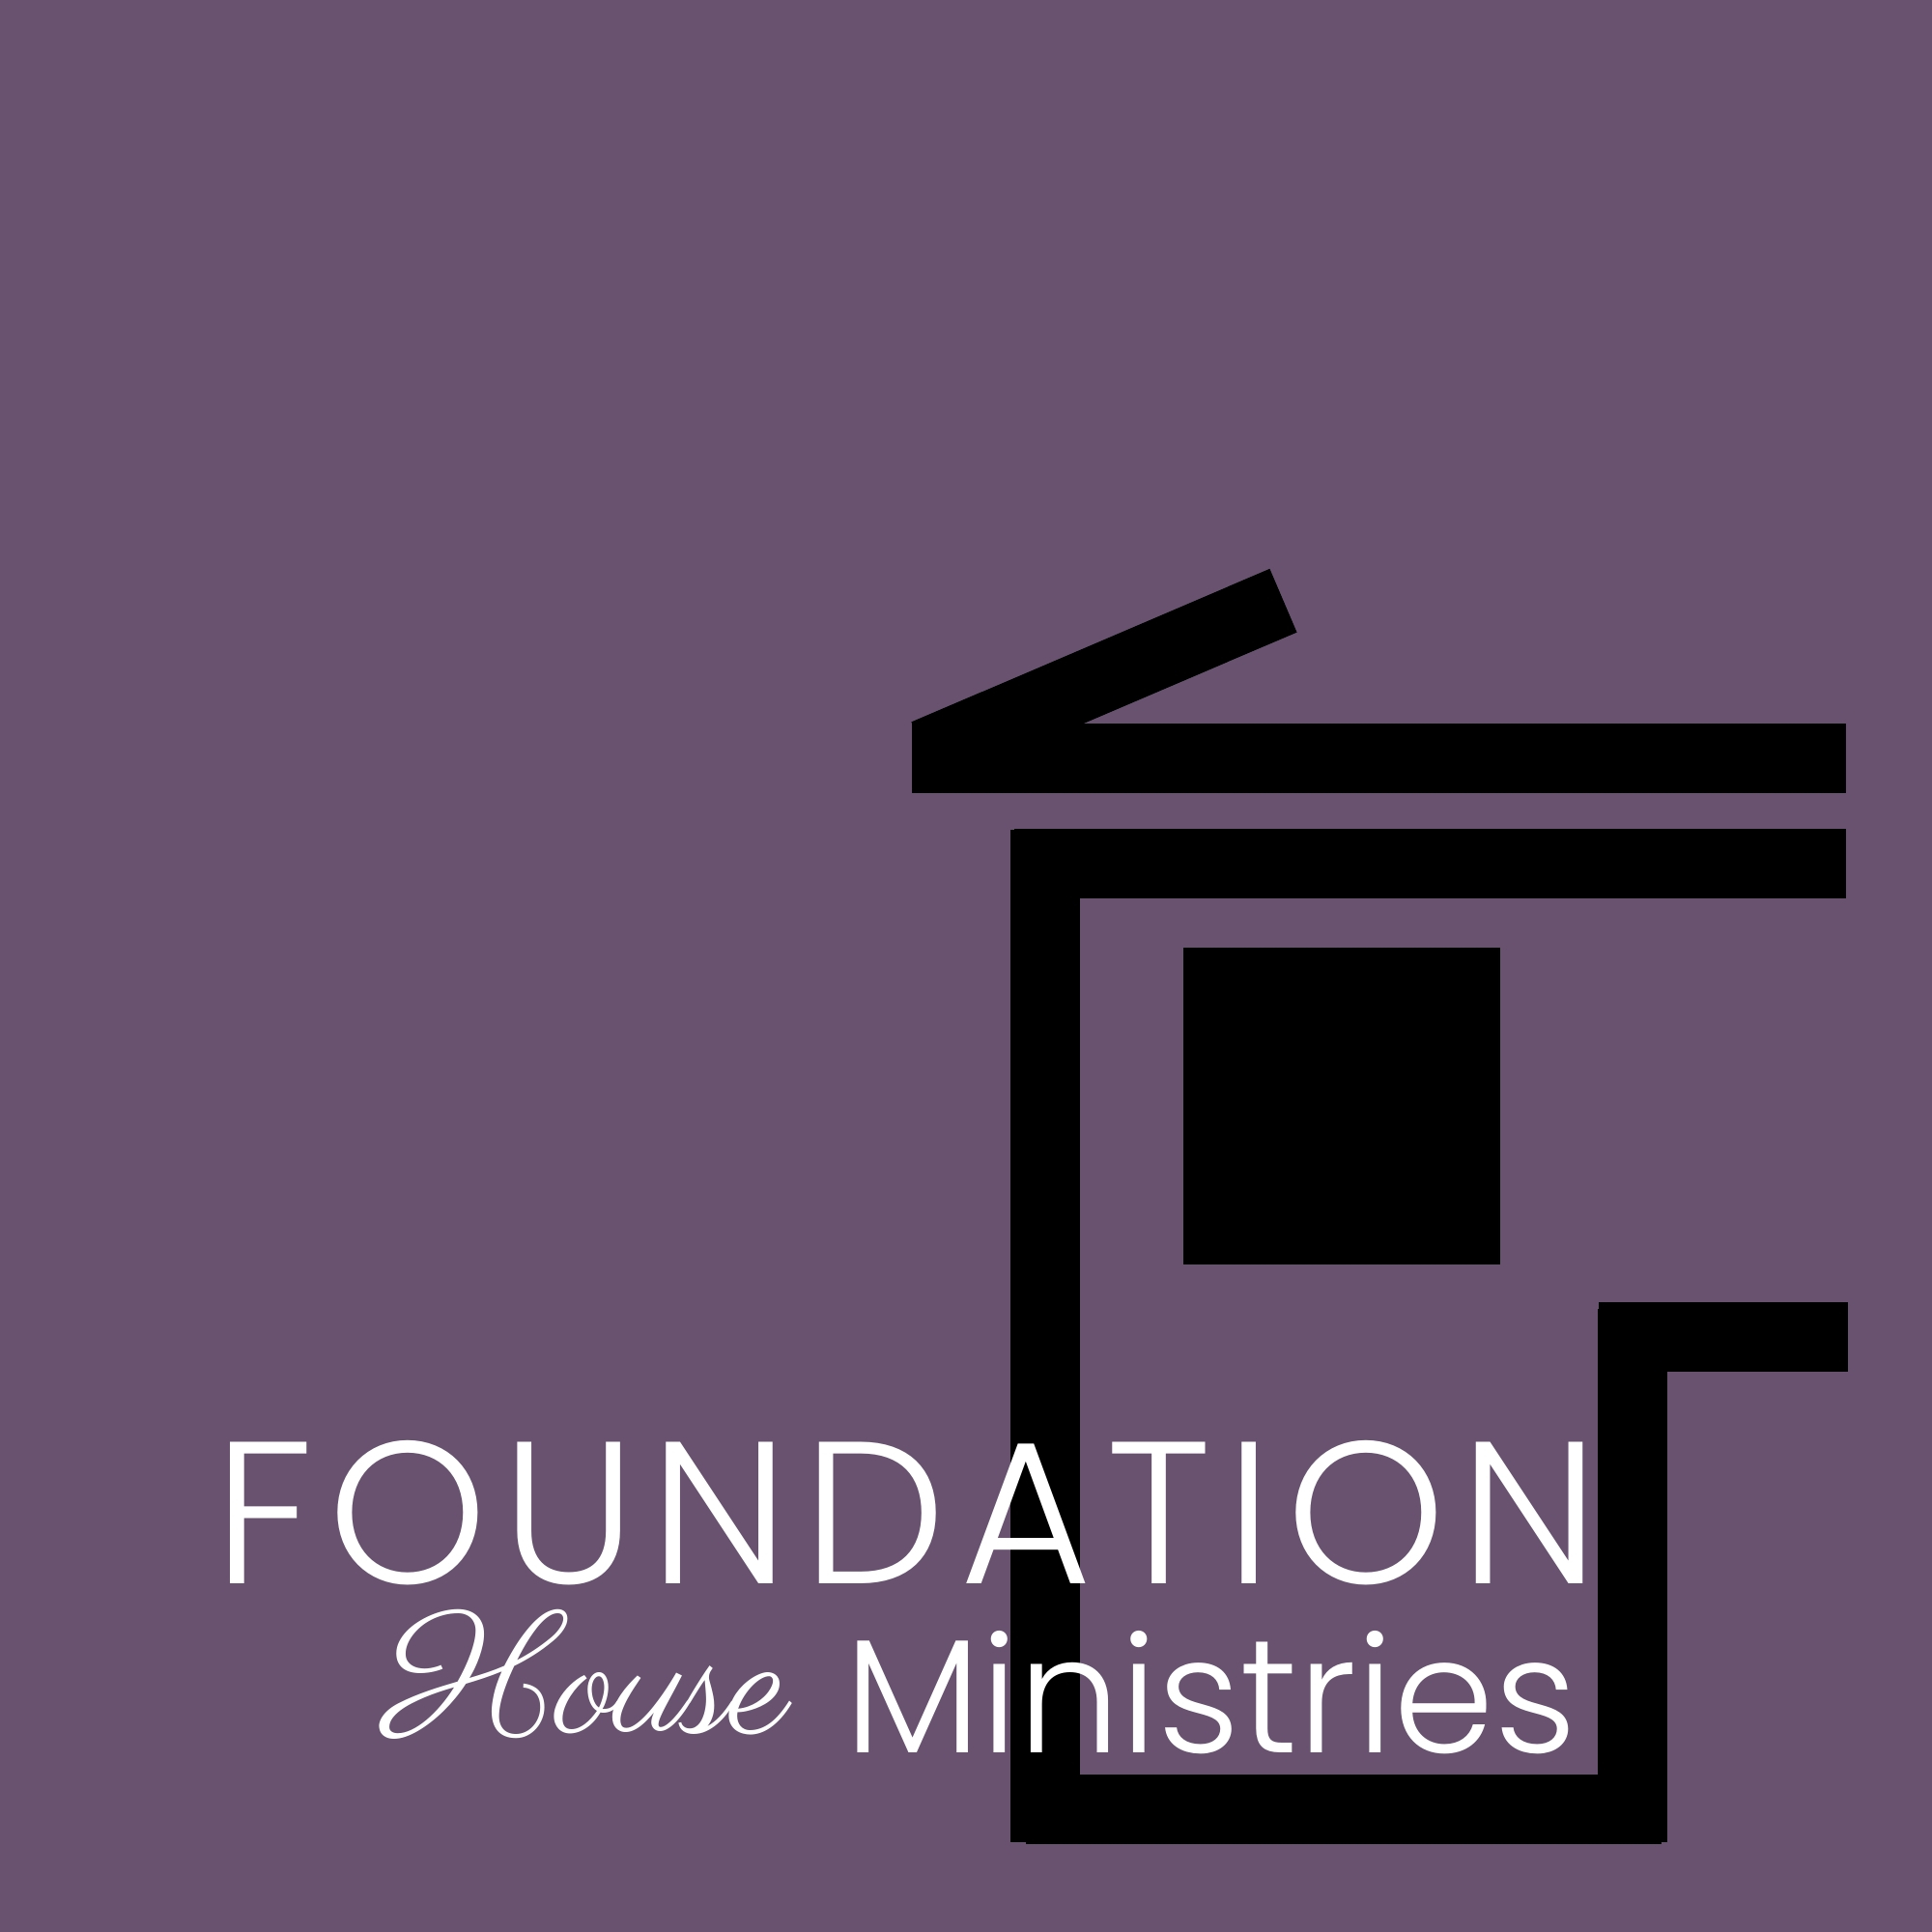 FOundation House Ministries.jpg